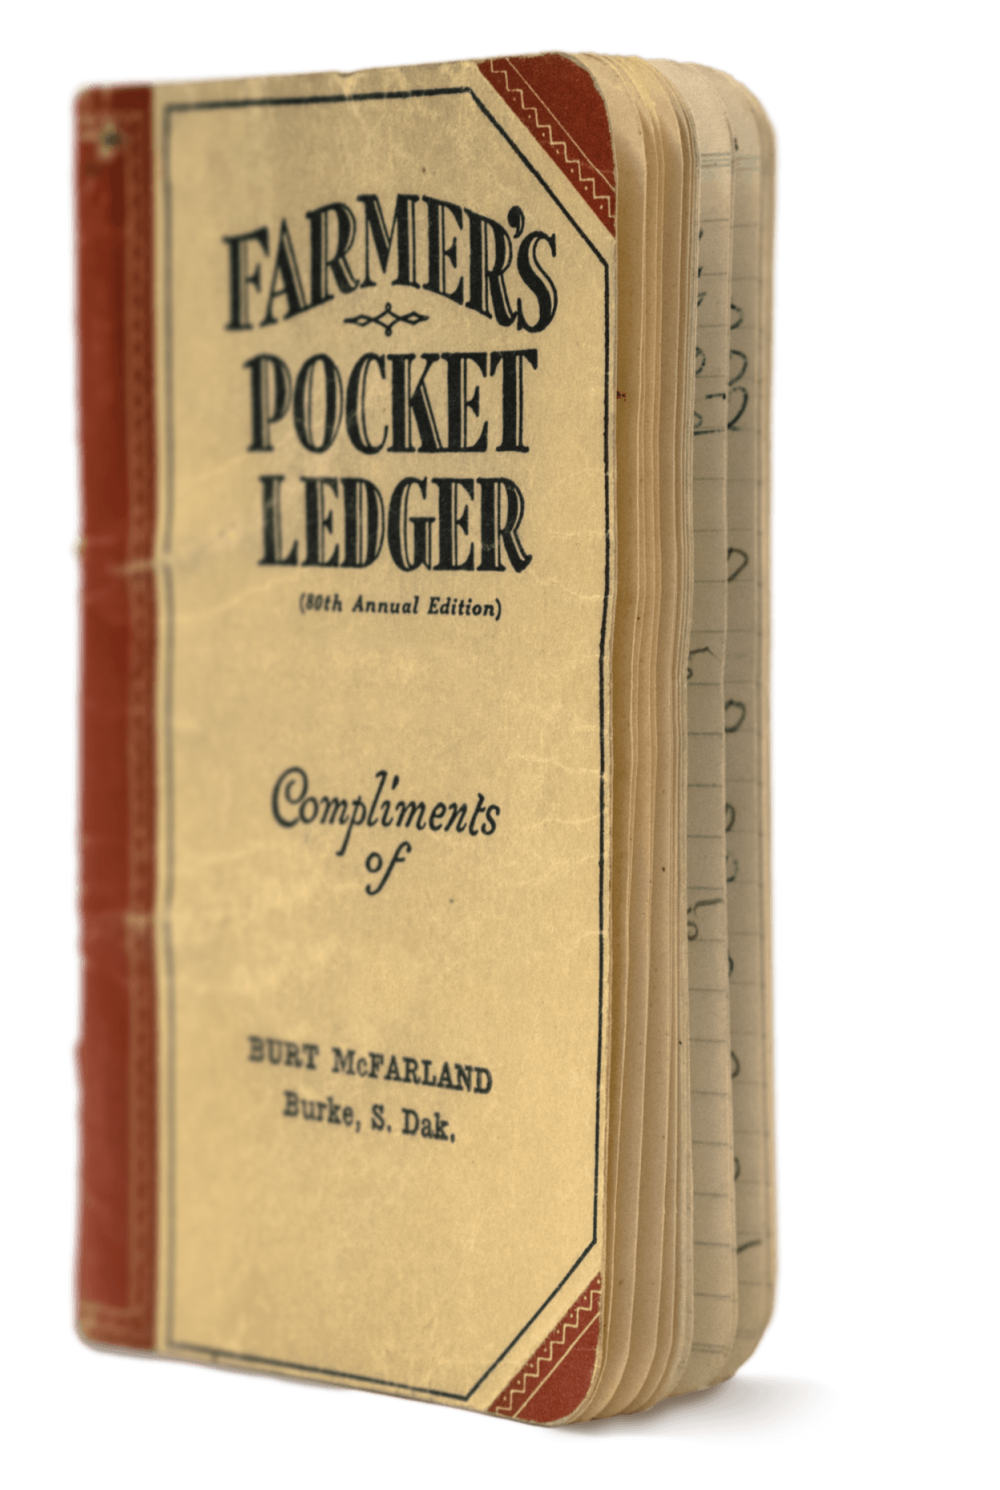 Pocket ledger open